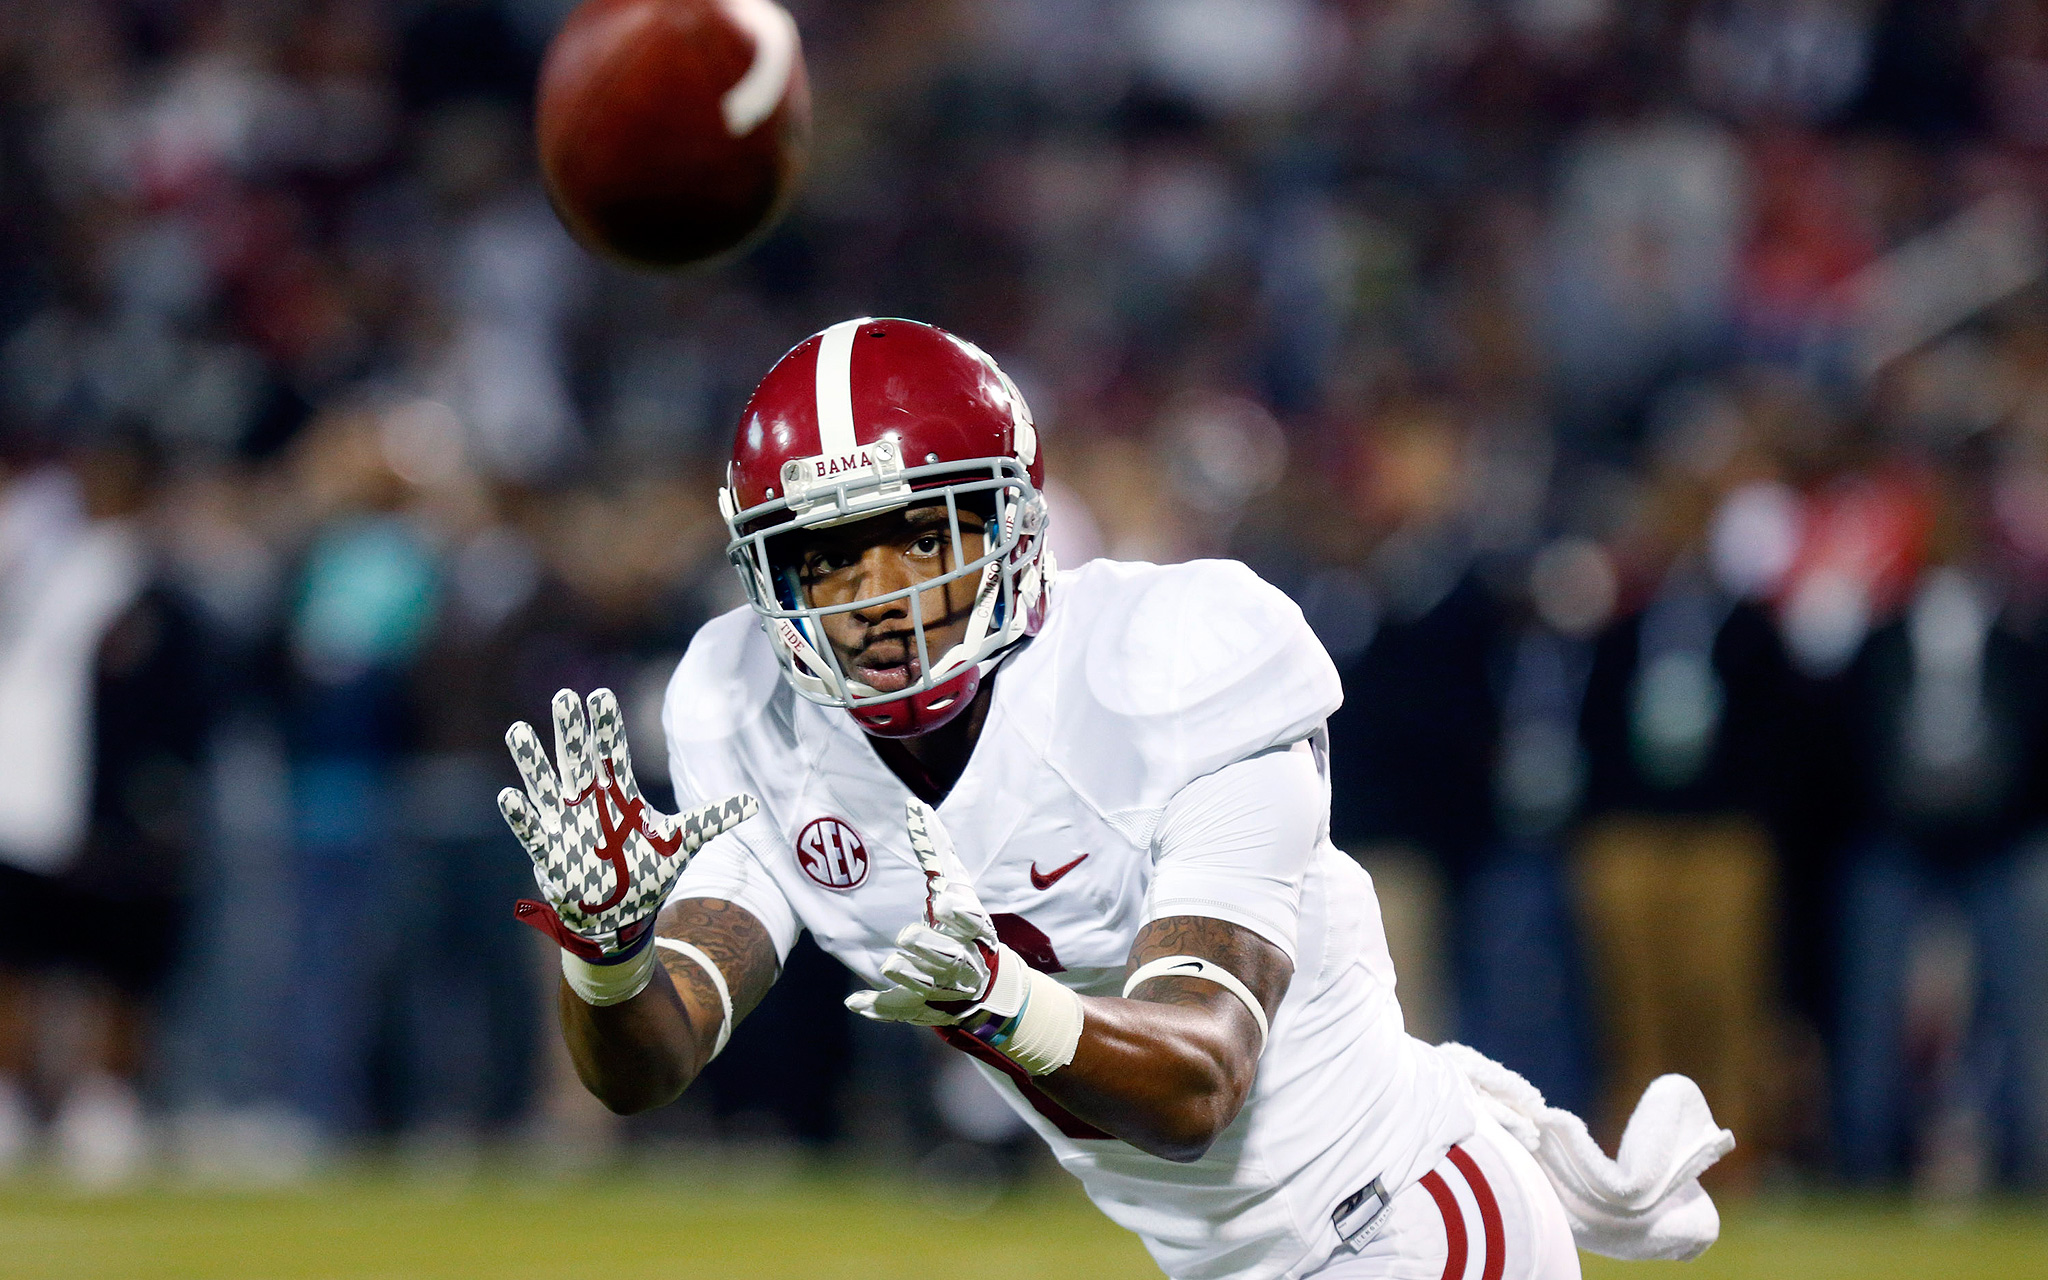 Alabama safety Ha Ha Clinton-Dix